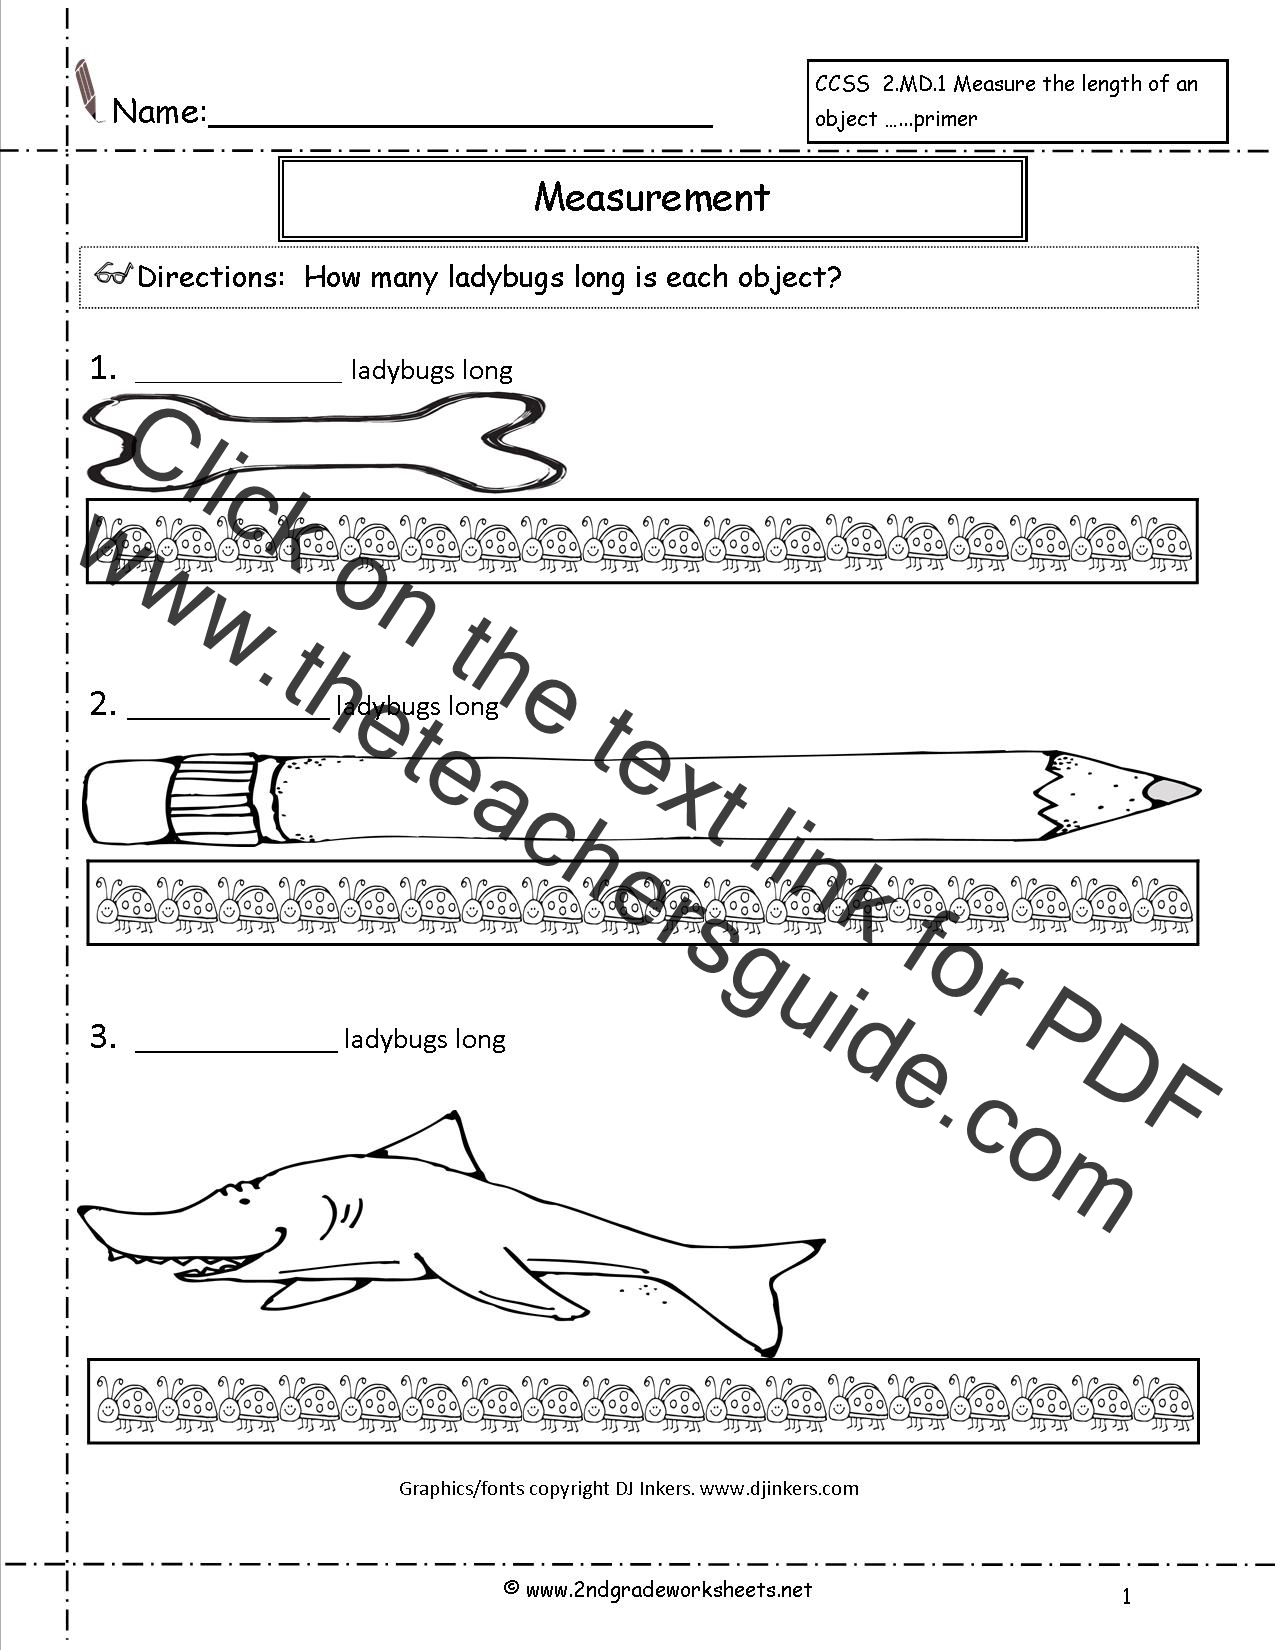 Linear Measurement Worksheet For Grade 1